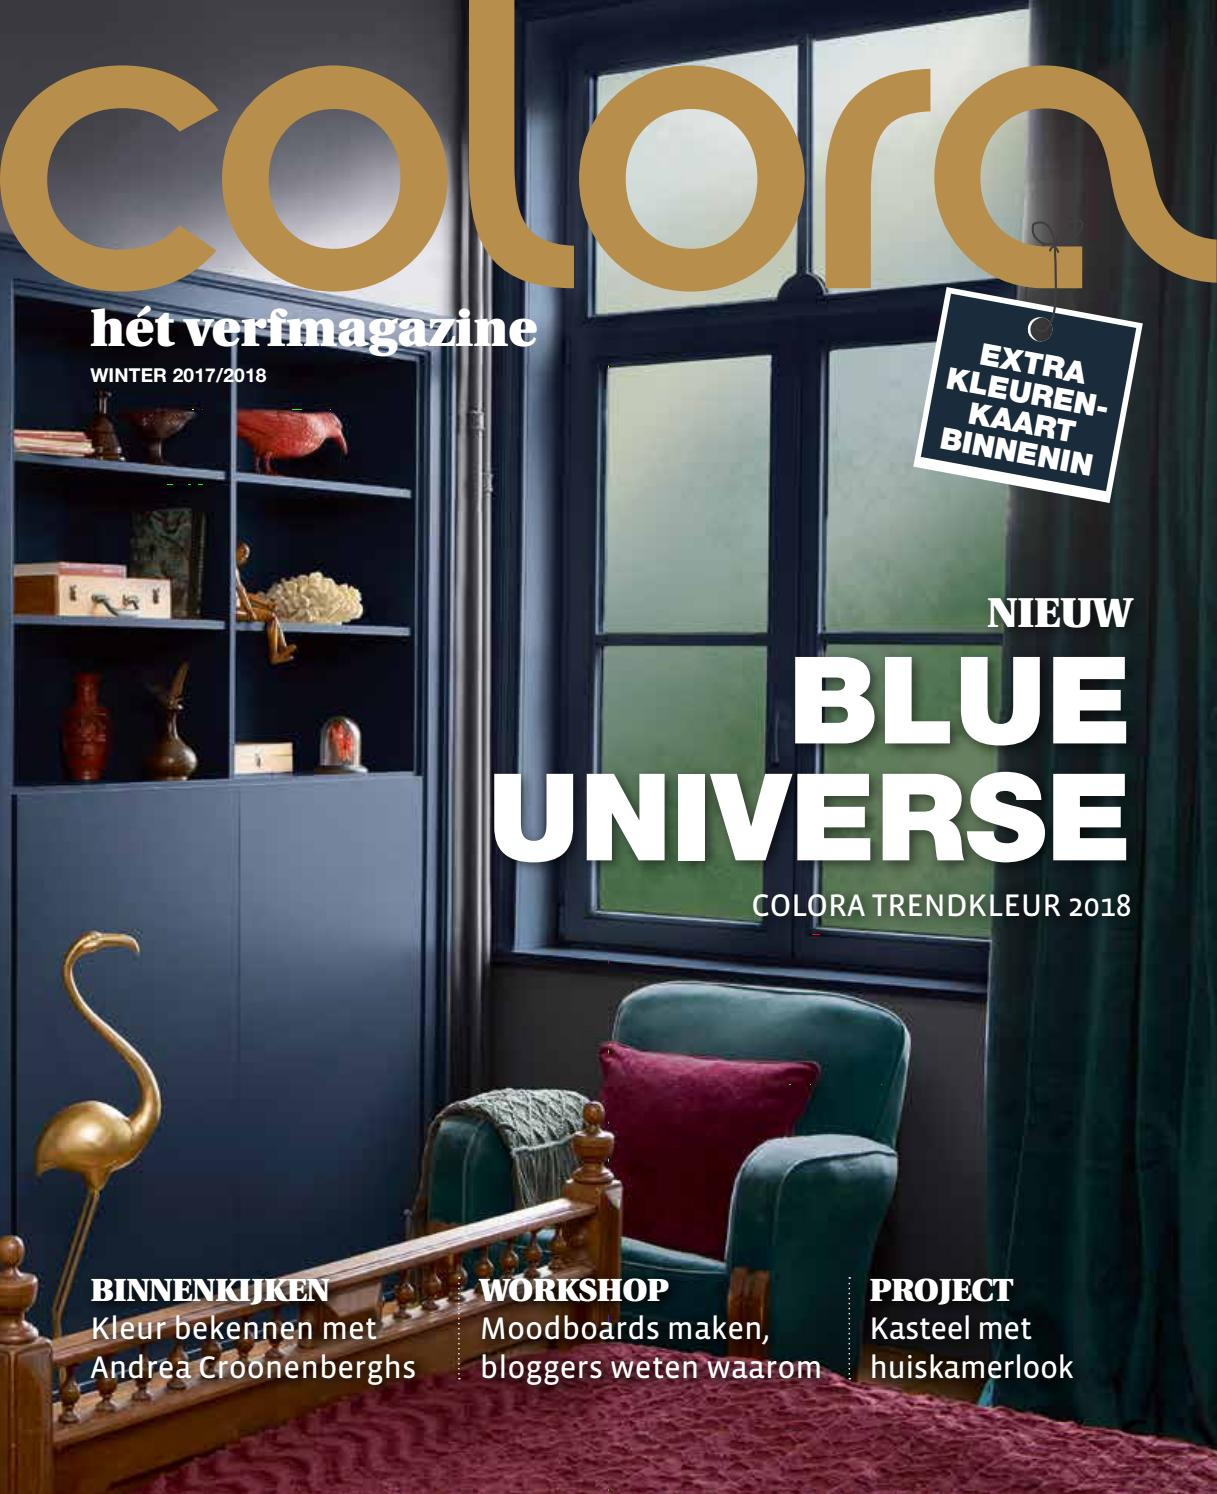 Slaapkamer Ral 9001 Coloramagazine Winter 2017 2018 By Colora De Verfwinkel Issuu